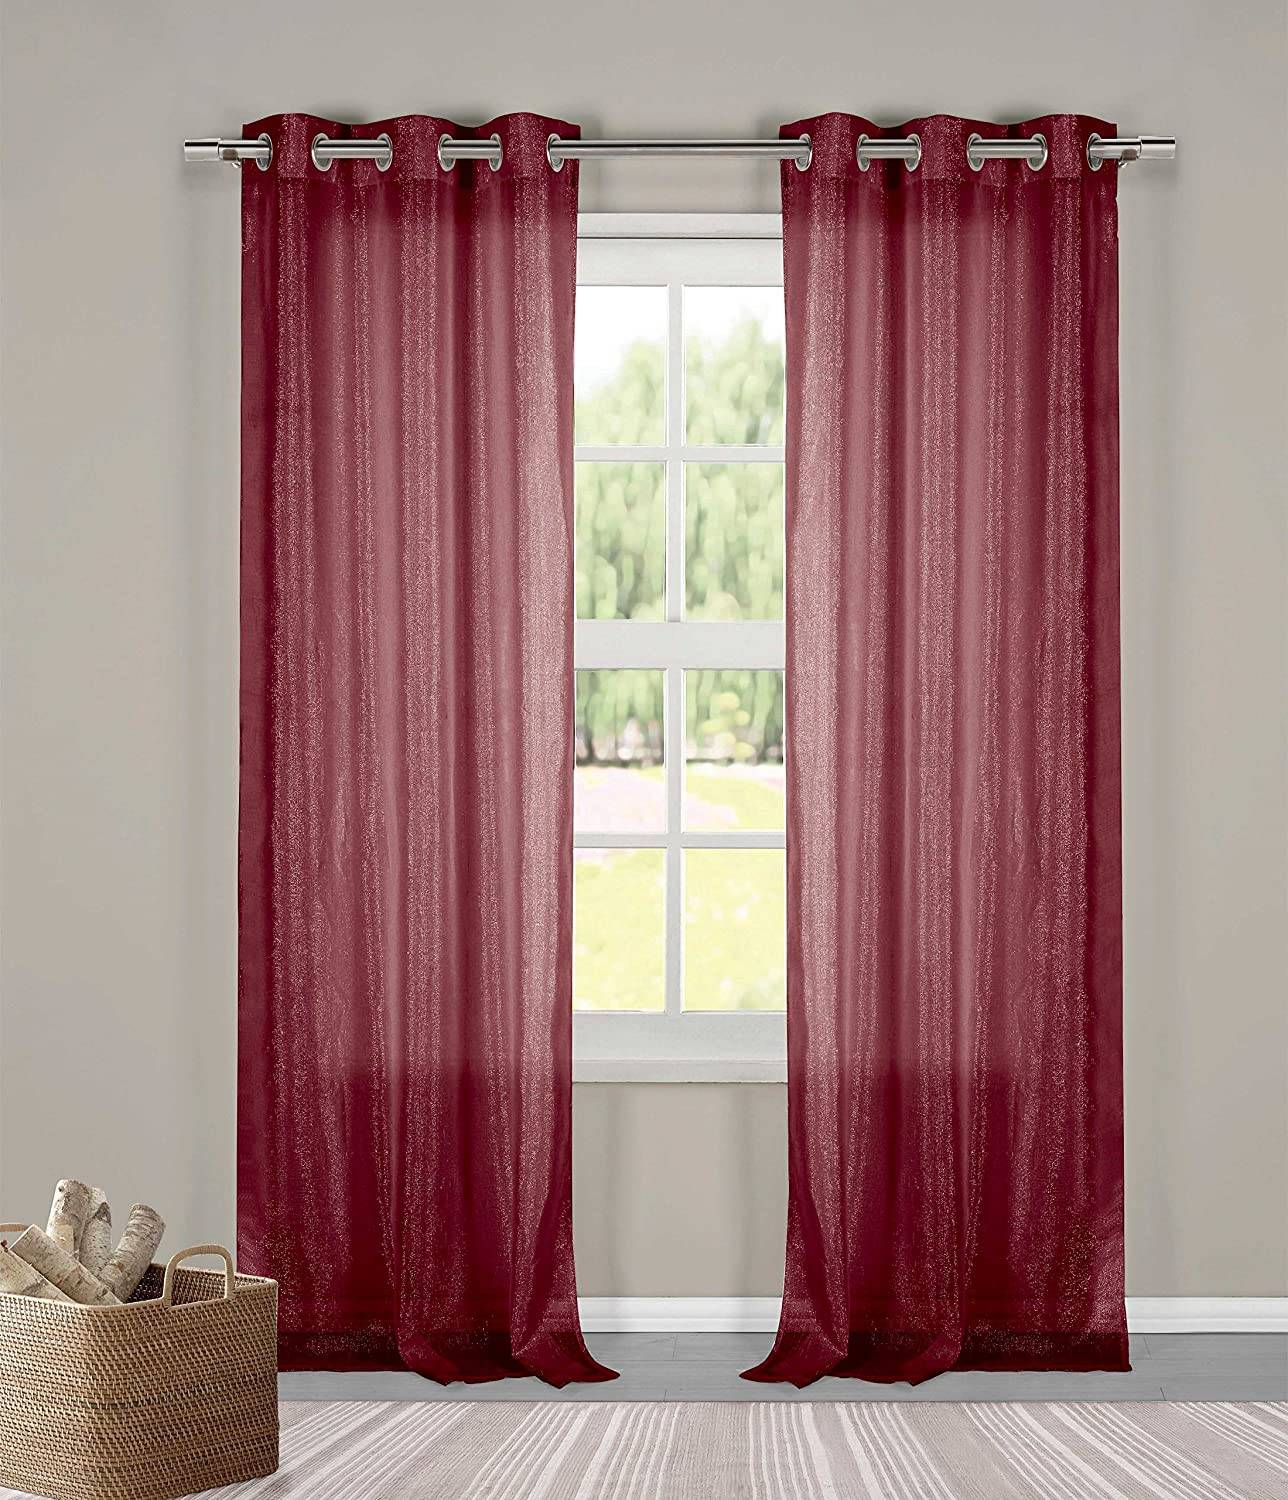 "Threadhouse Curtains Best Of Bathroom and More Two 2 Metallic Thread Sheer Grommet Window Curtain Panels 76"" X 84"" Burgundy"